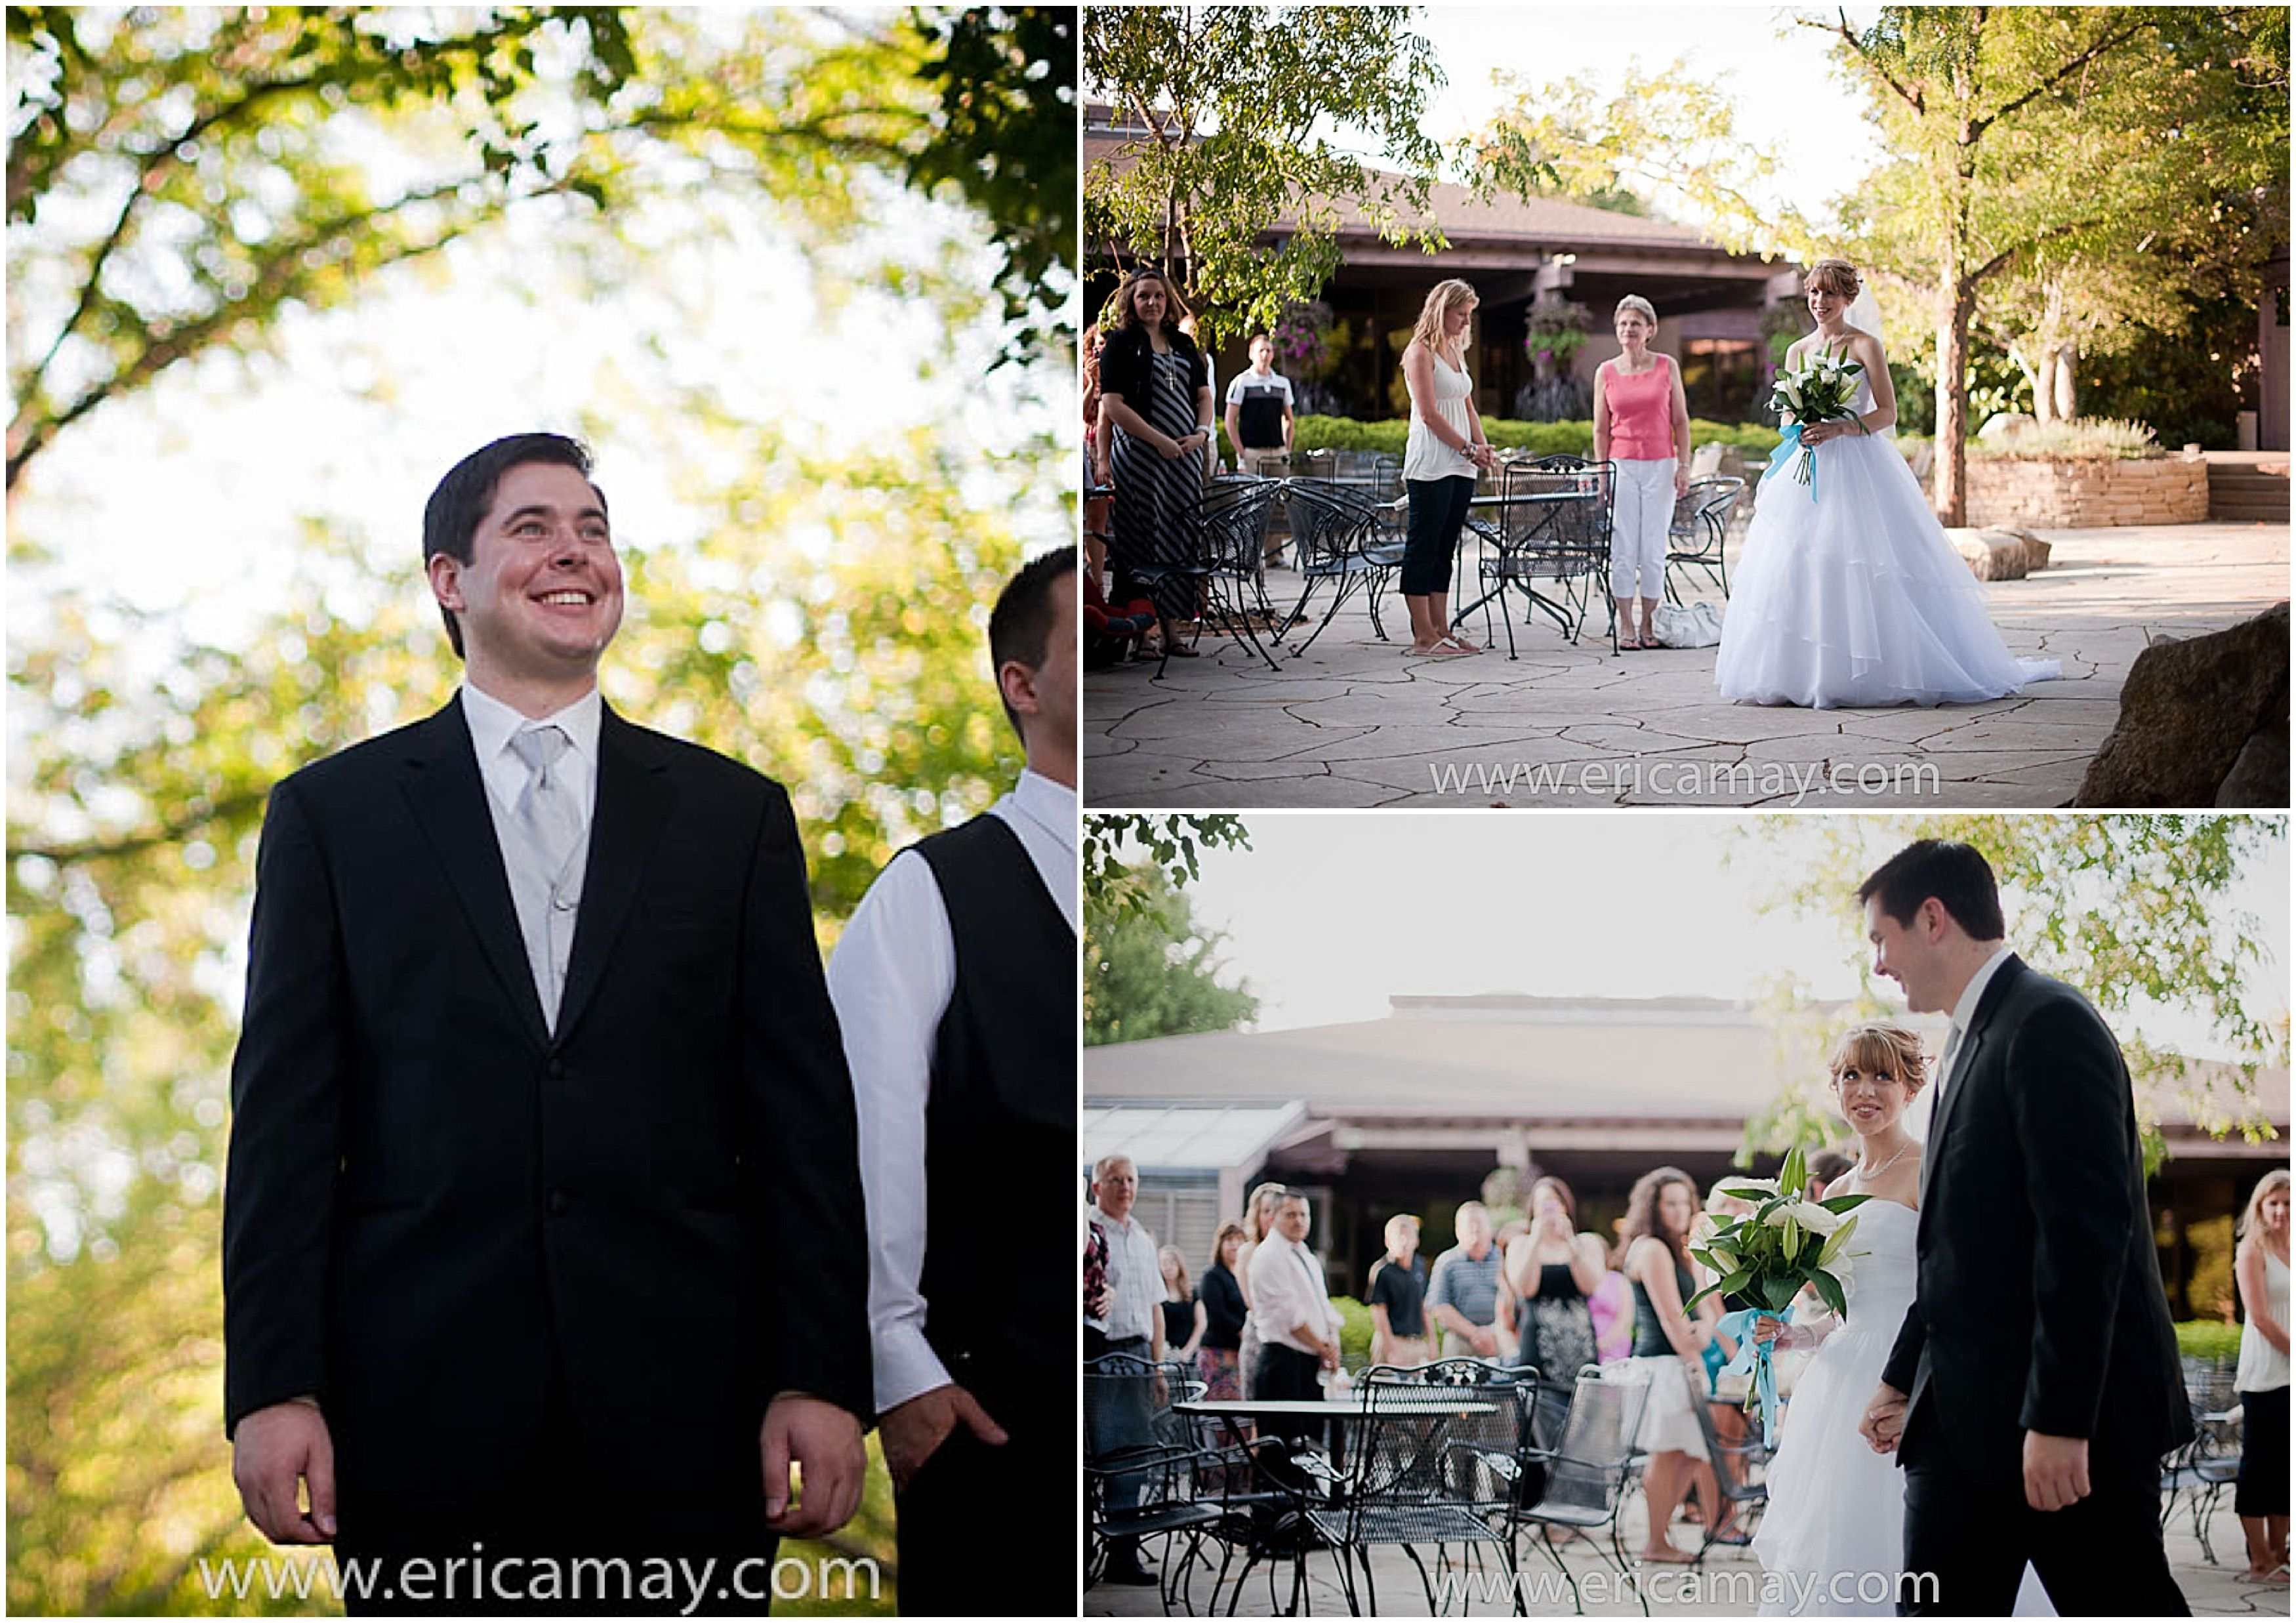 Botanica In Wichita Kansas Wedding Venue